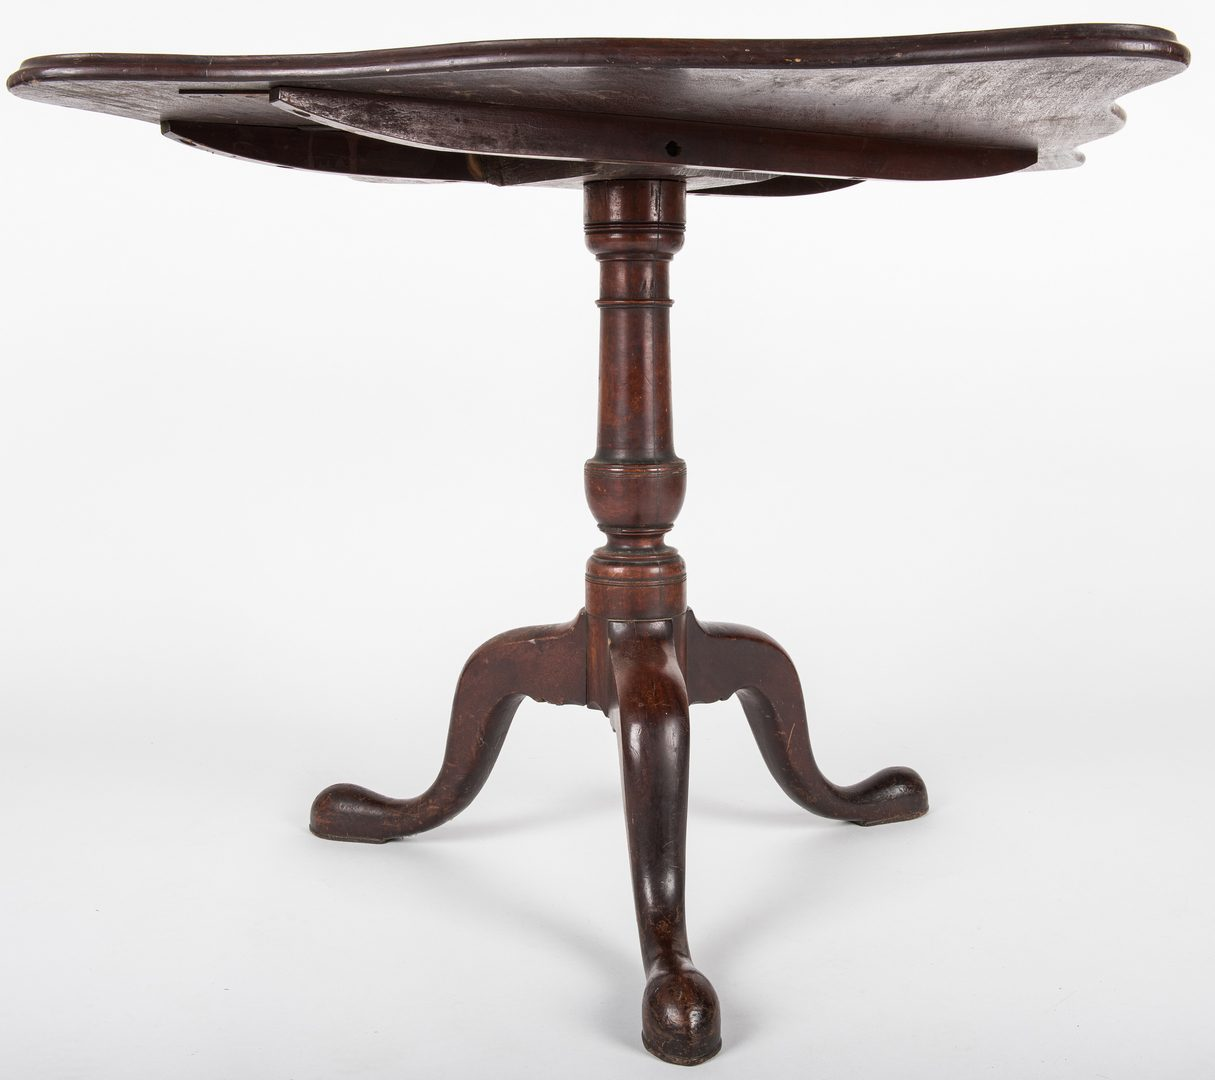 Lot 445: Queen Anne Square Tilt-top Table